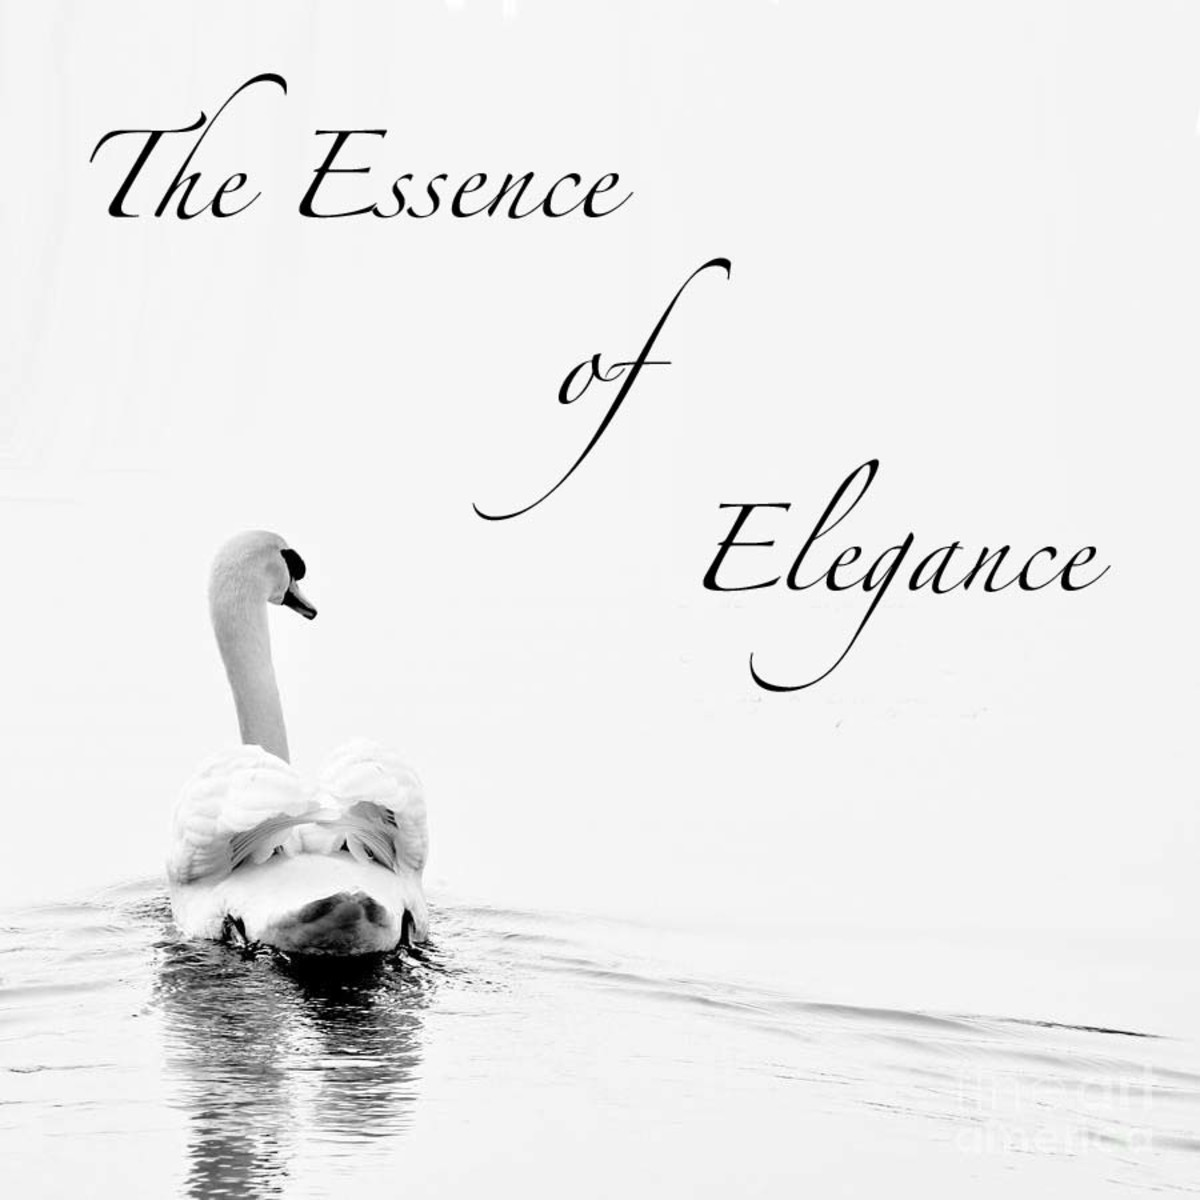 The Essence of Elegance